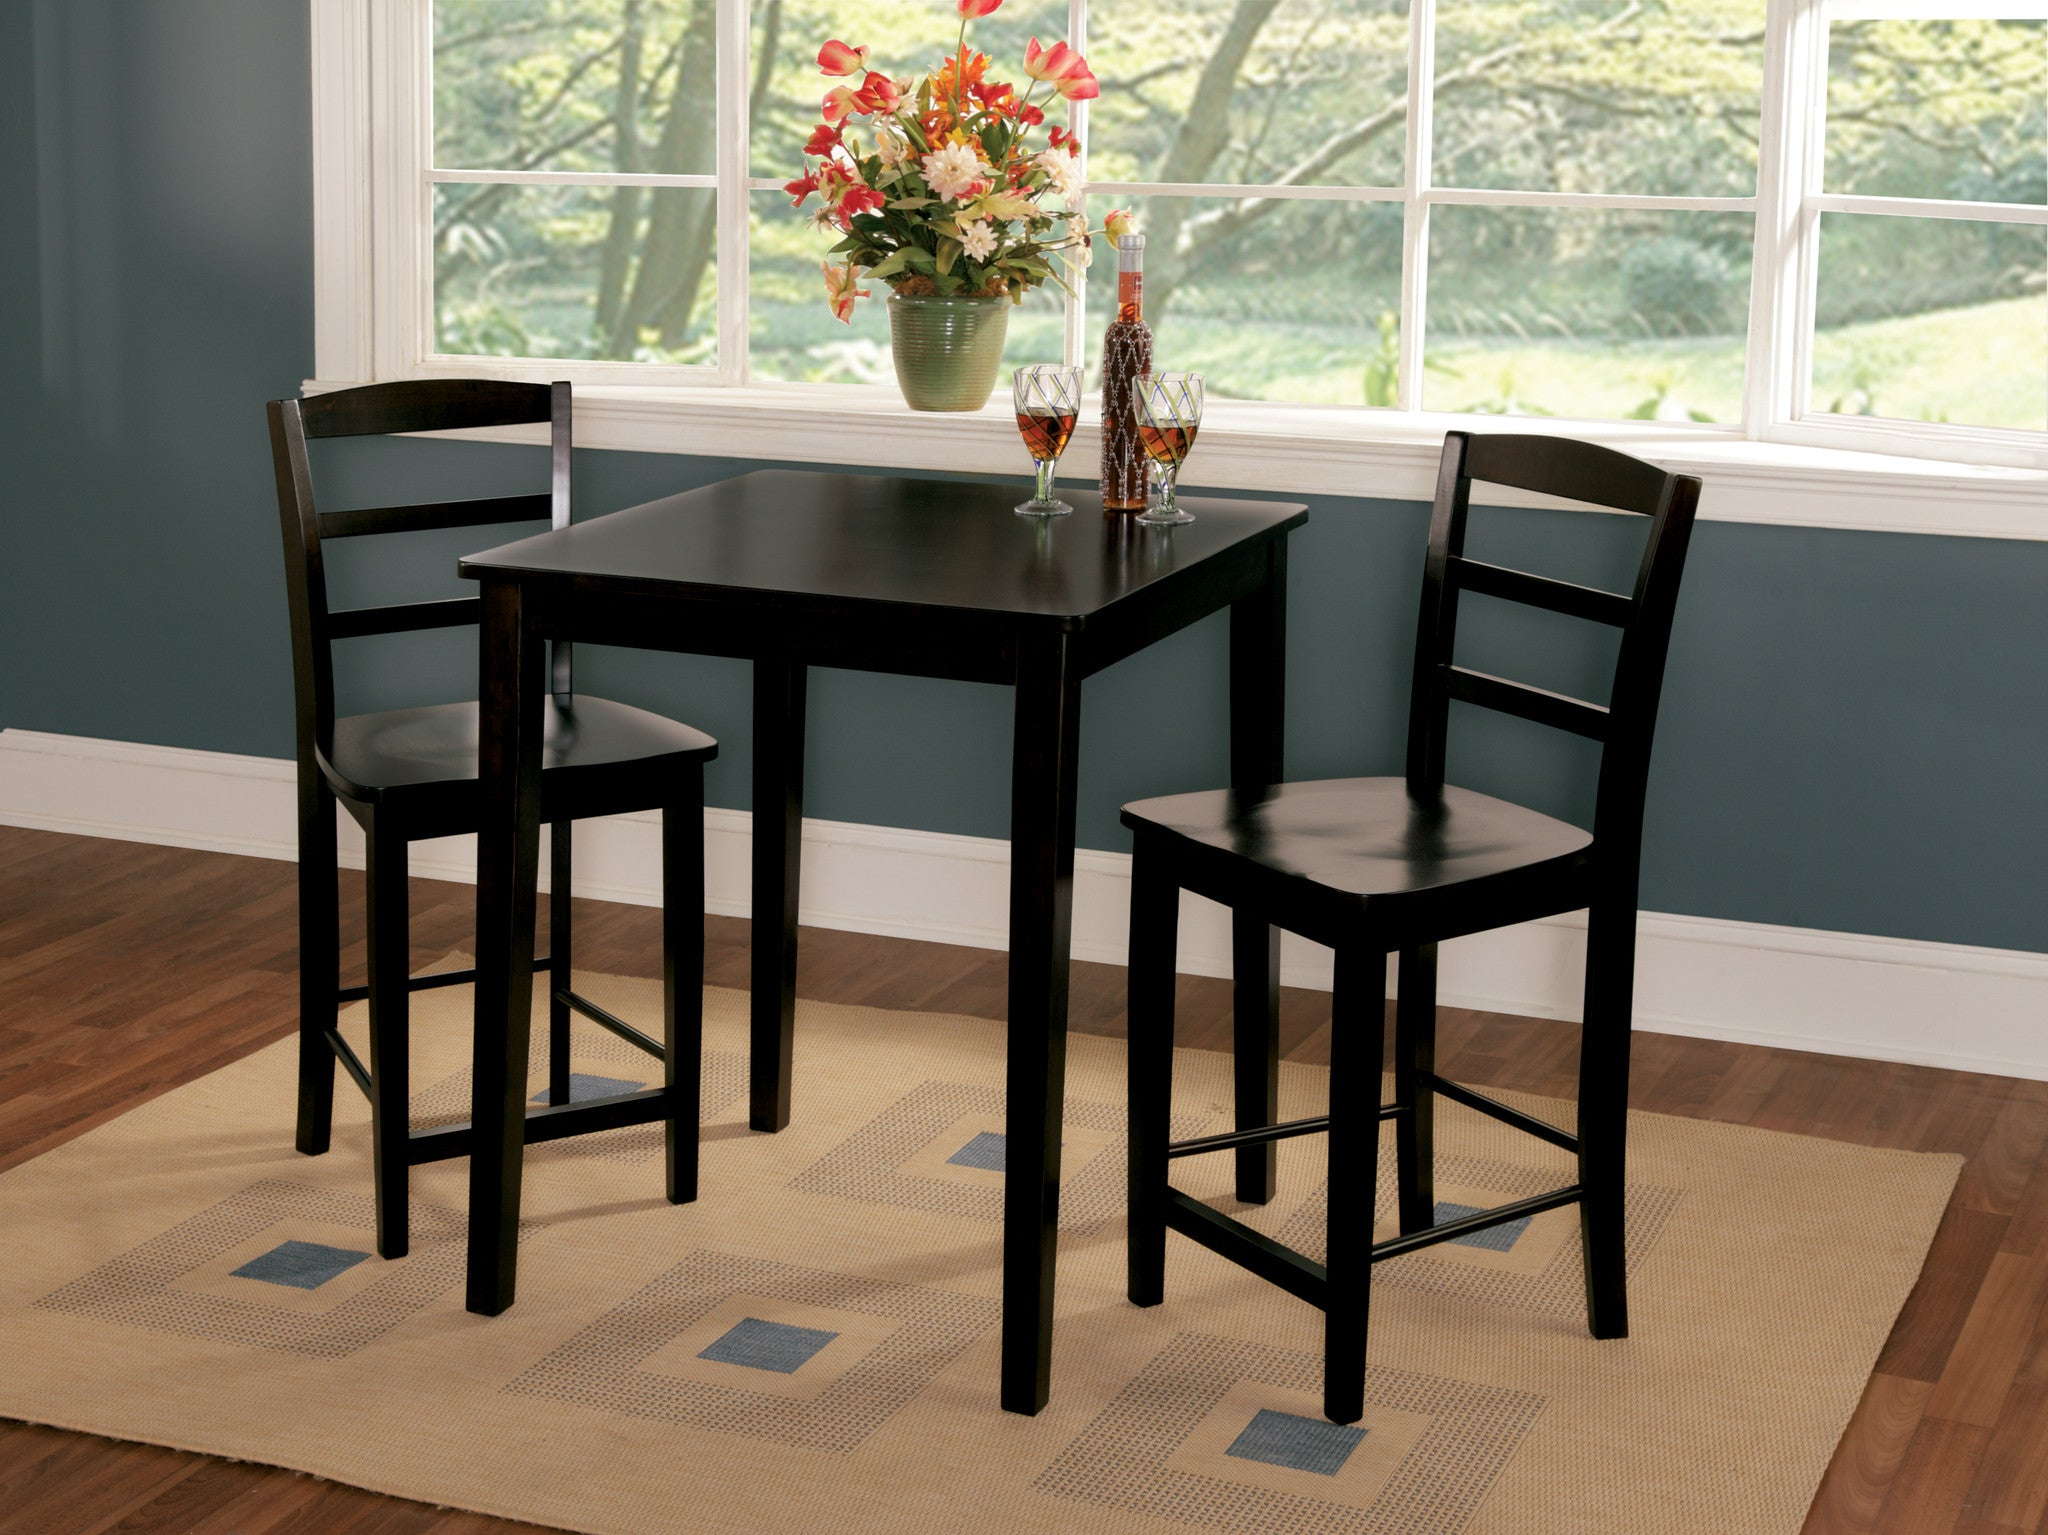 Shaker Dining Table Choose Height And Finish Free Shipping - 30 x 42 dining table